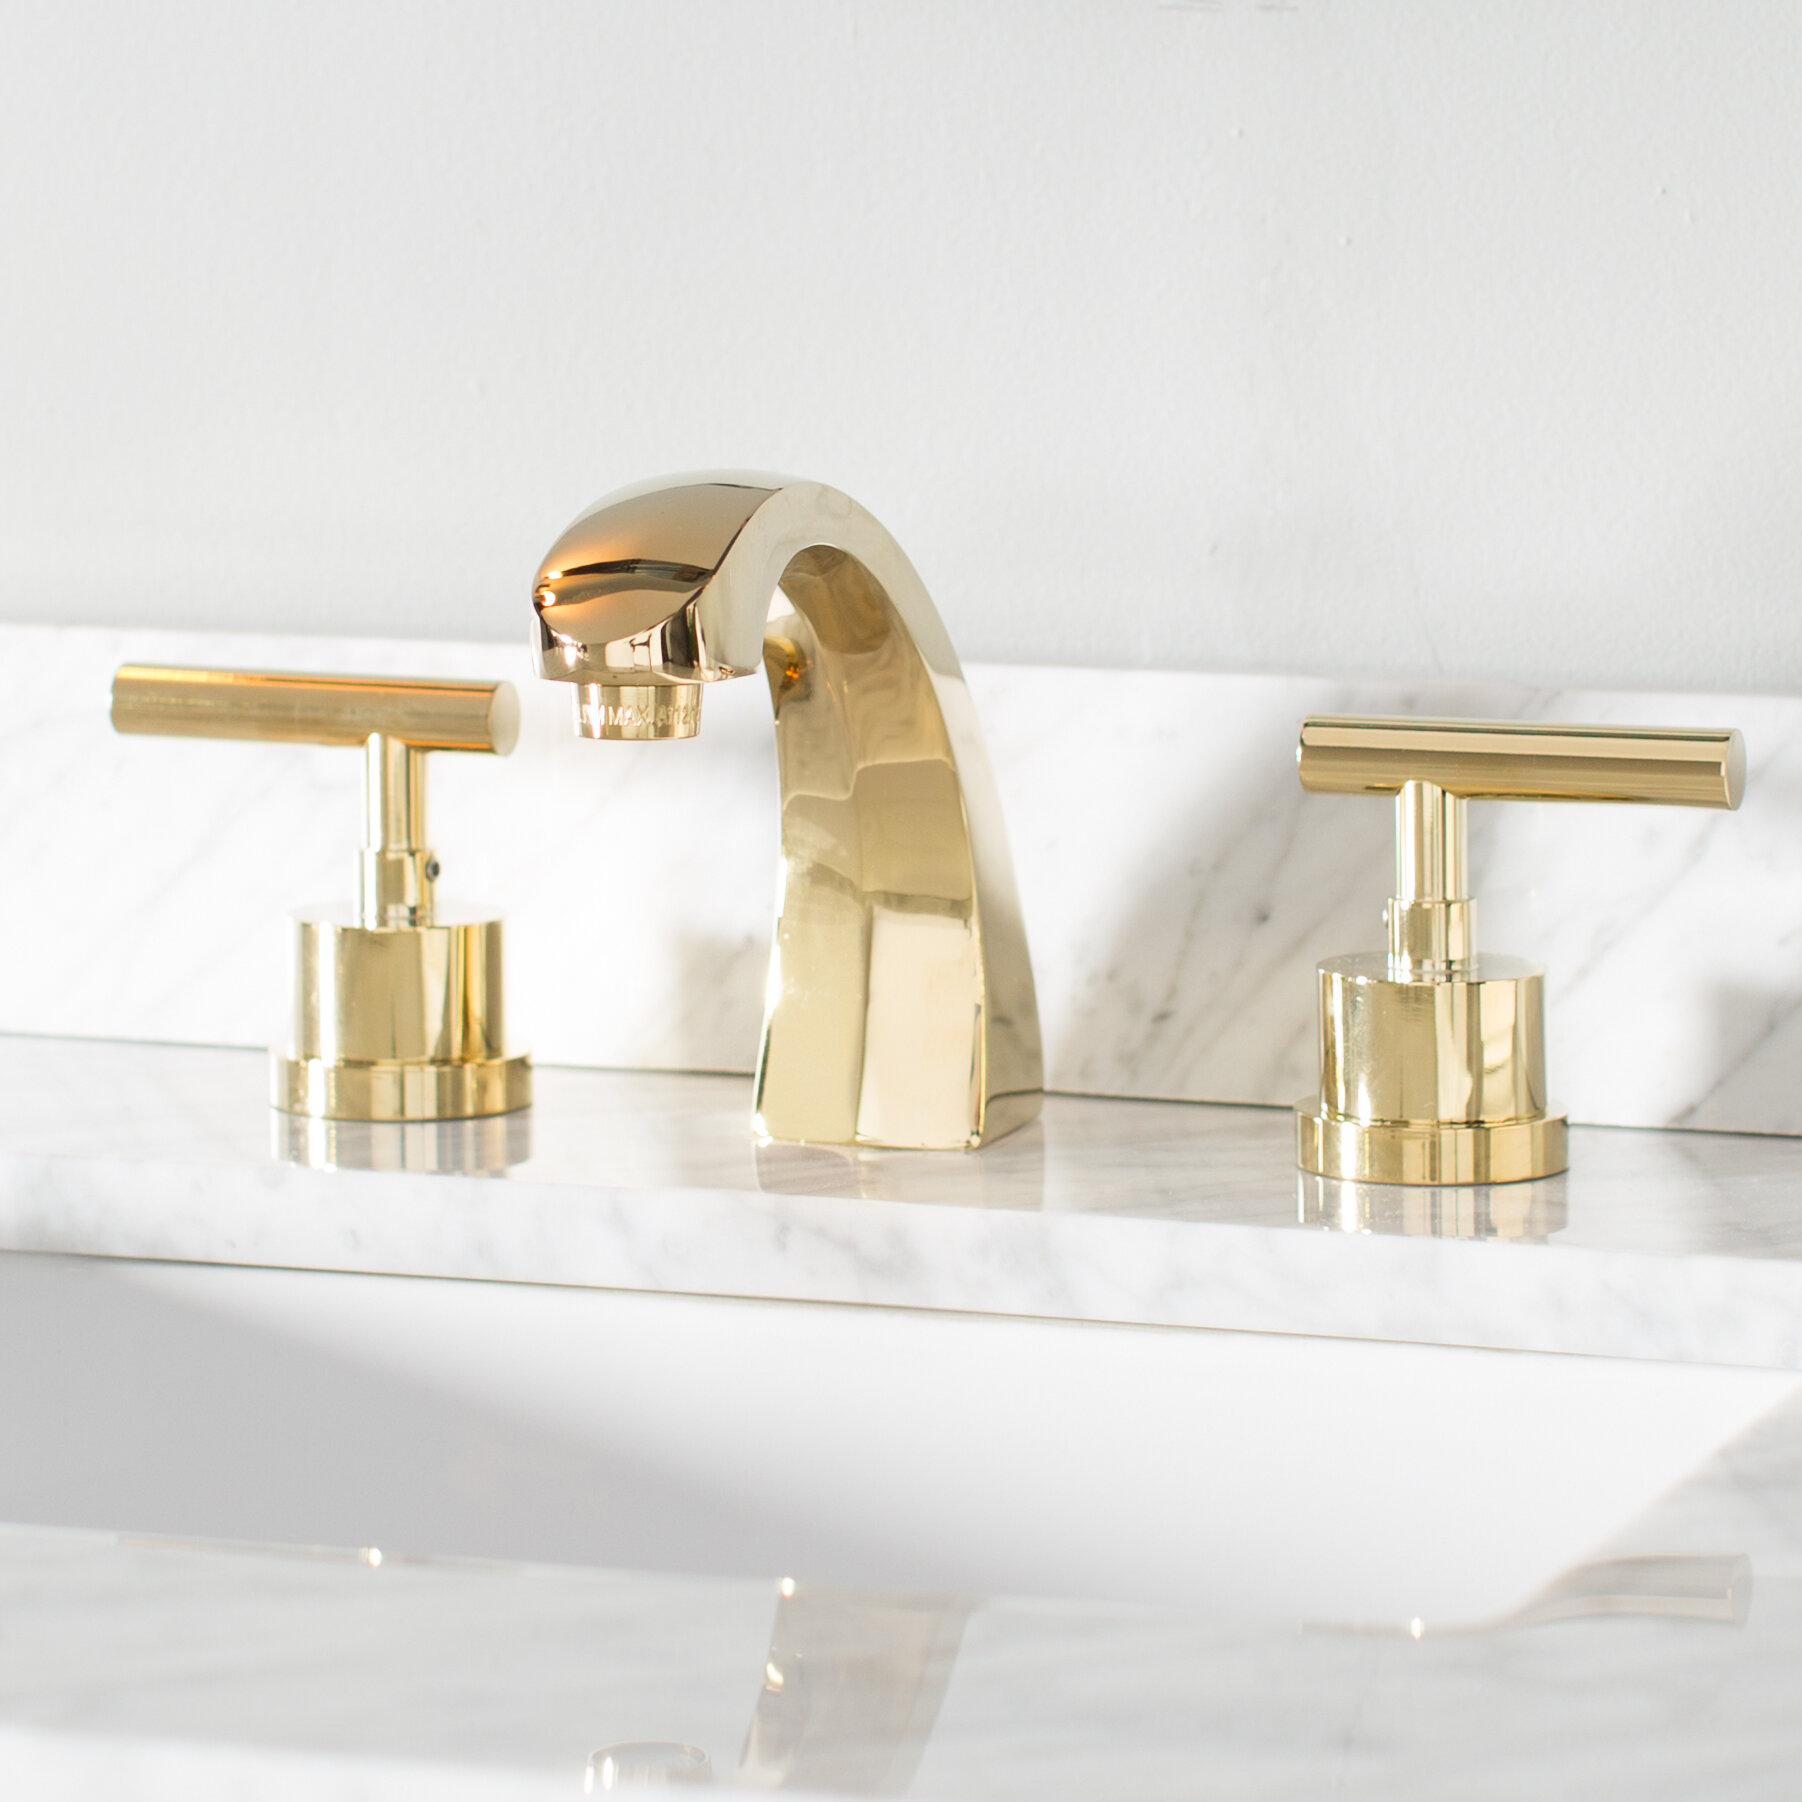 faucet out dhgate hot kitchen head pull com product aupai spray from brass